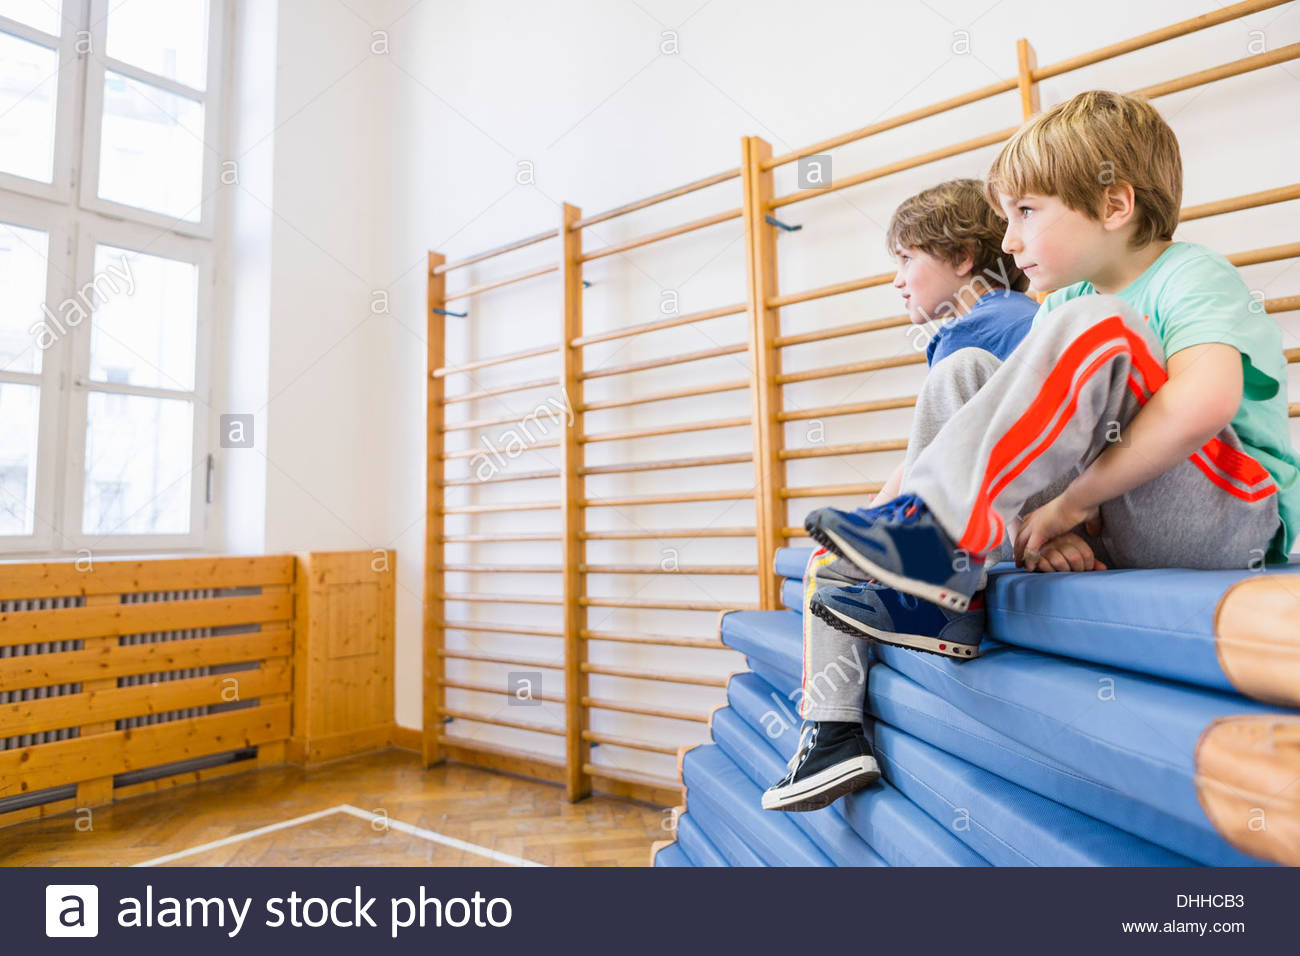 Boys sitting on top of pile of blue exercise mats - Stock Image